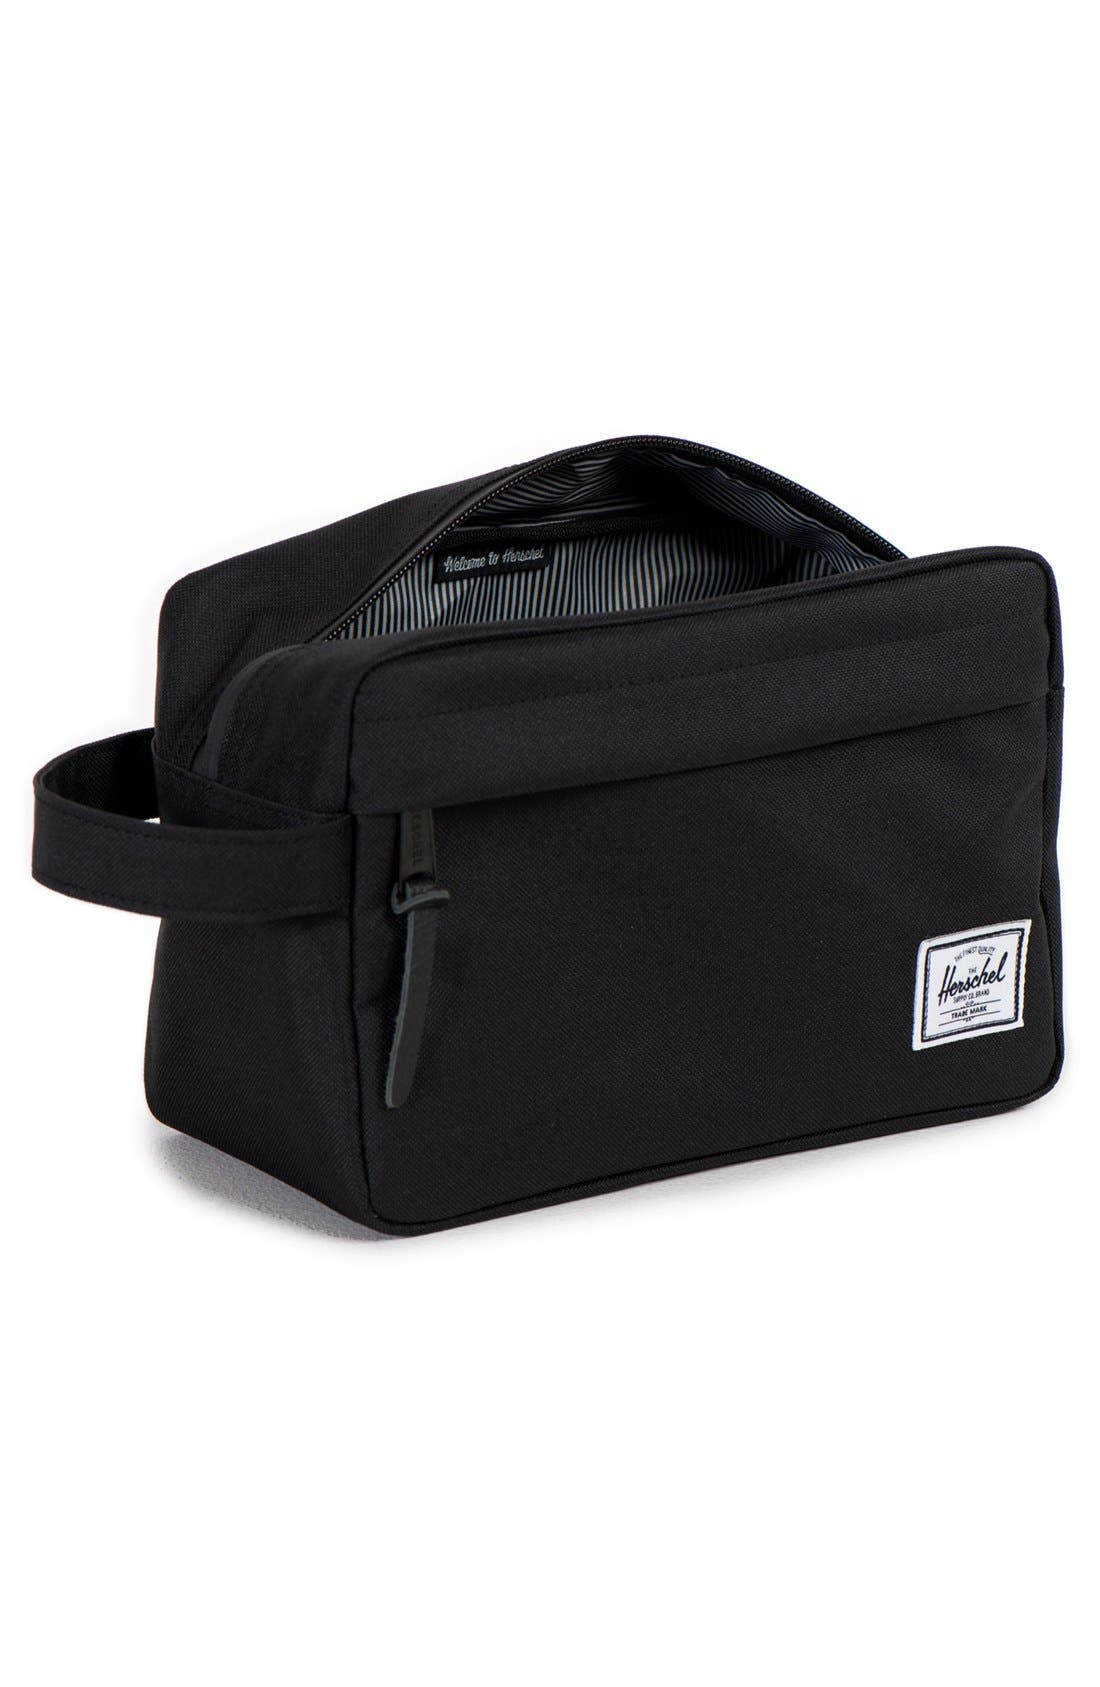 'Chapter' Toiletry Case,                             Alternate thumbnail 10, color,                             BLACK